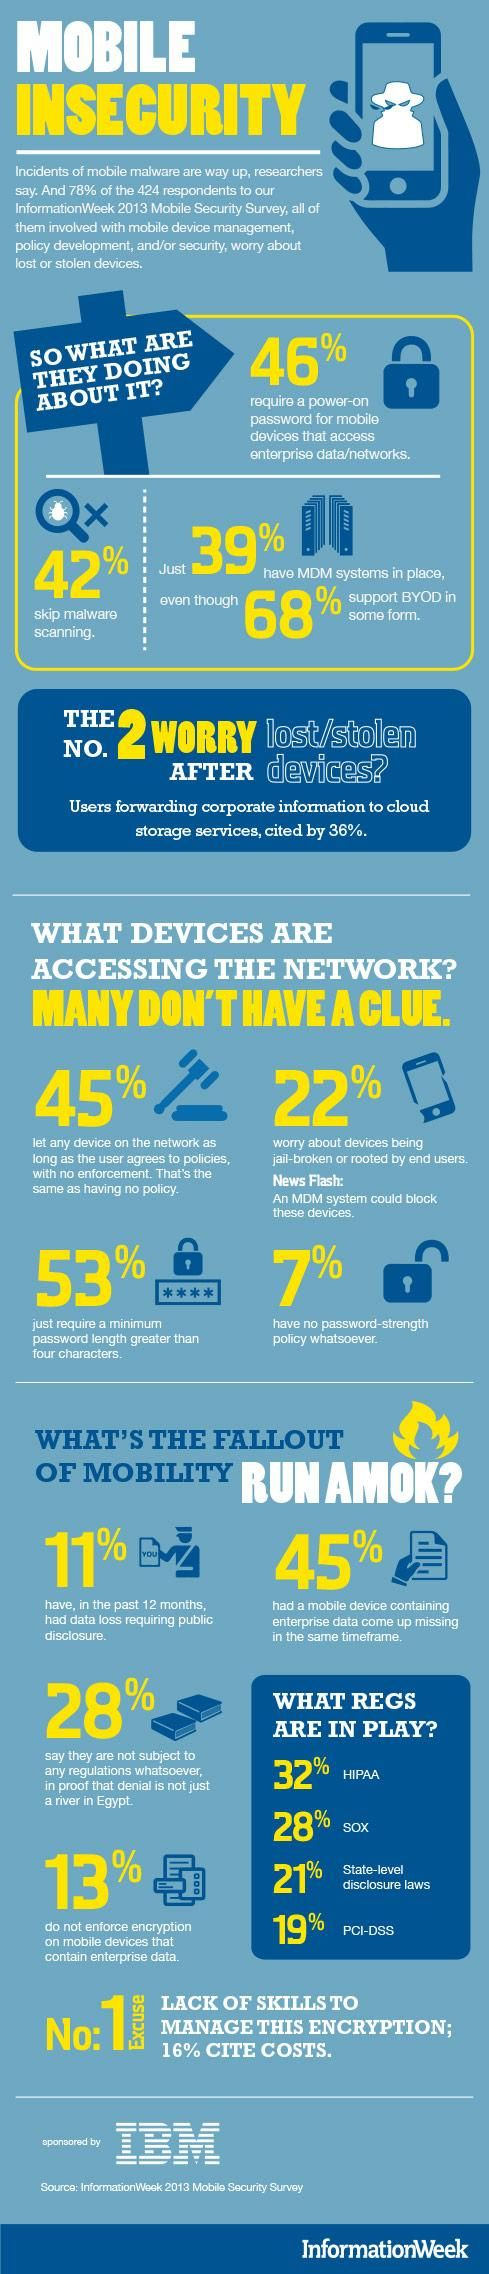 Where is your organization in the battle over mobile device management and security?